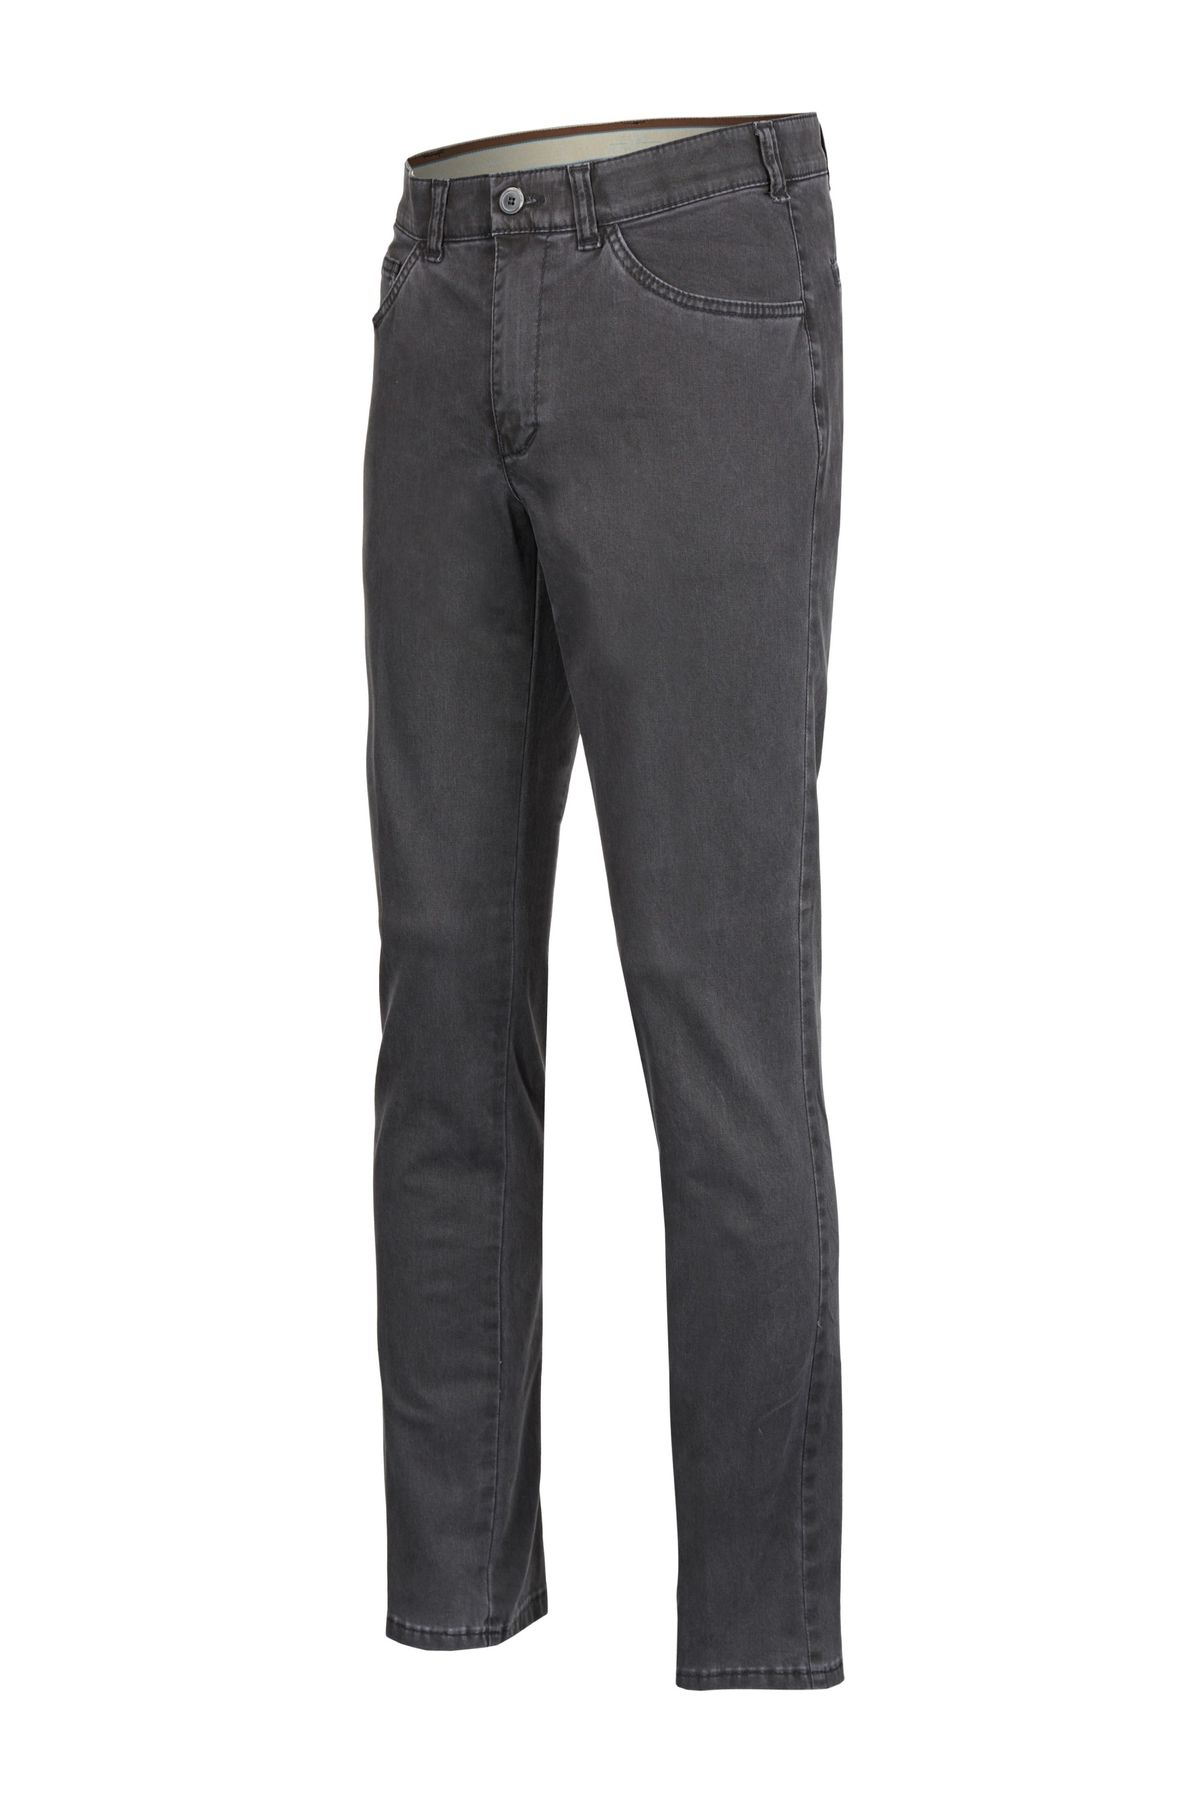 Club of Comfort - Herren Five Pocket Hose, Keno (6421) – Bild 2